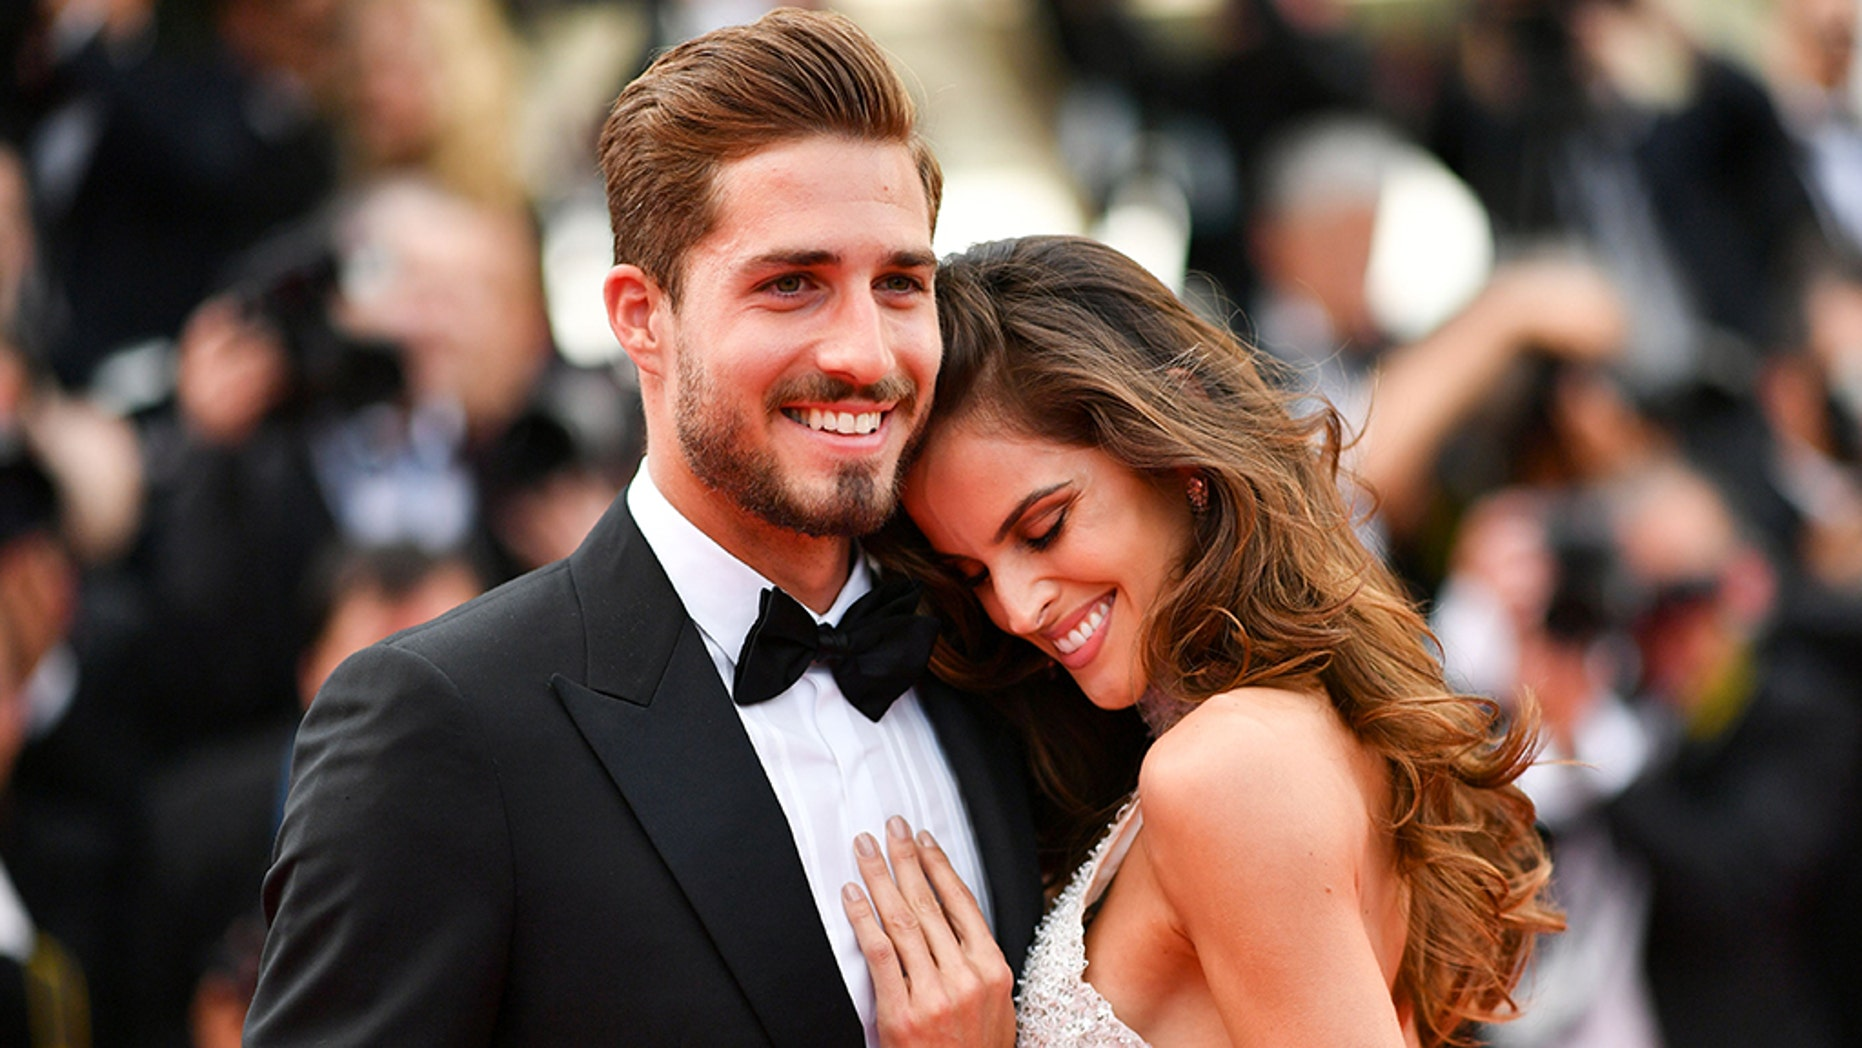 Izabel Goulart and her boyfriend Kevin Trapp revealed they're getting married by posting a video on their Instagram accounts this week.